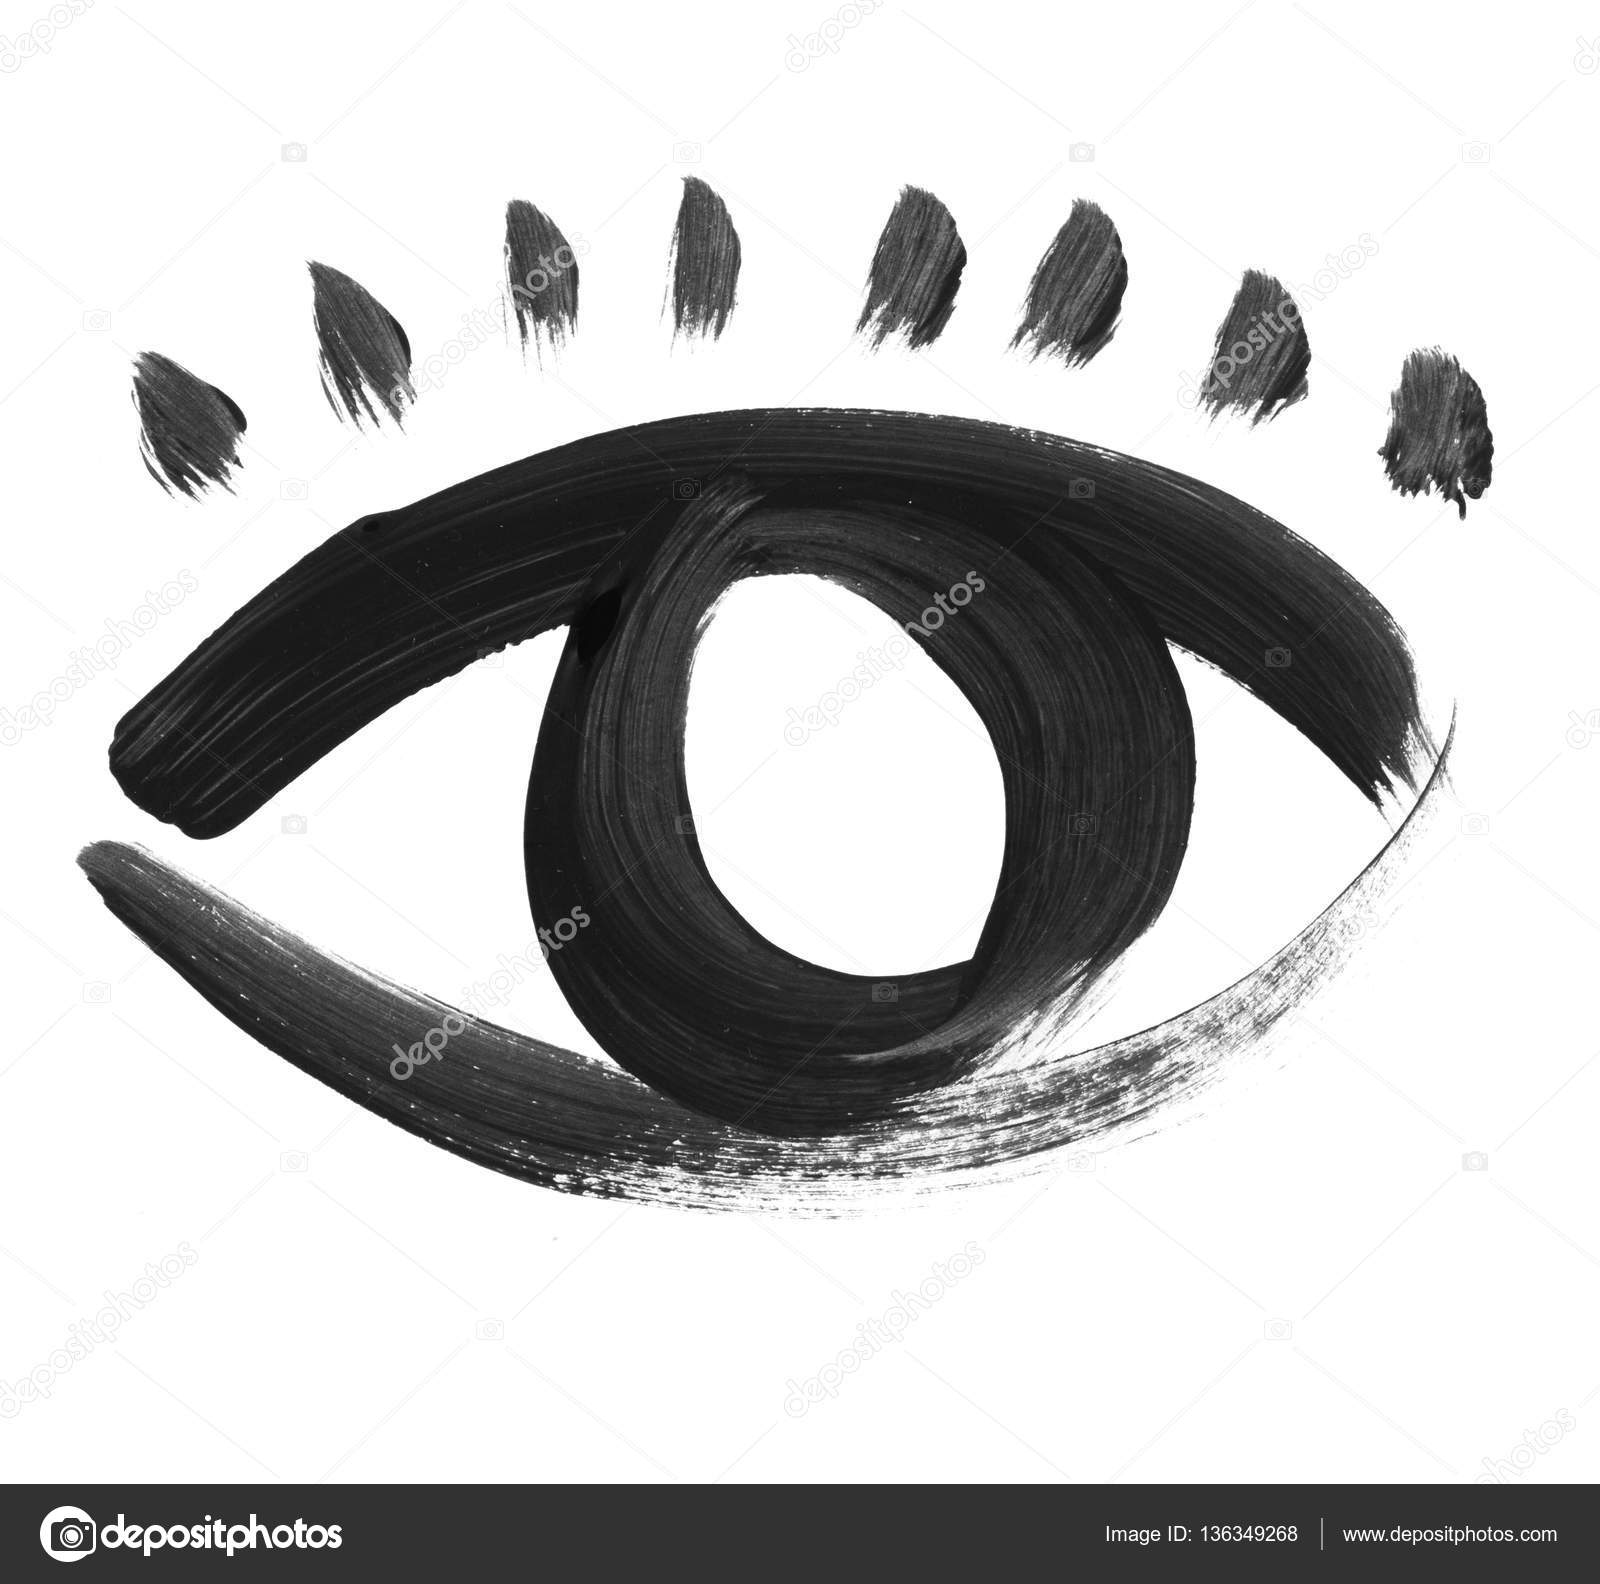 Drawn sykol eye Painted painted Stock  icon